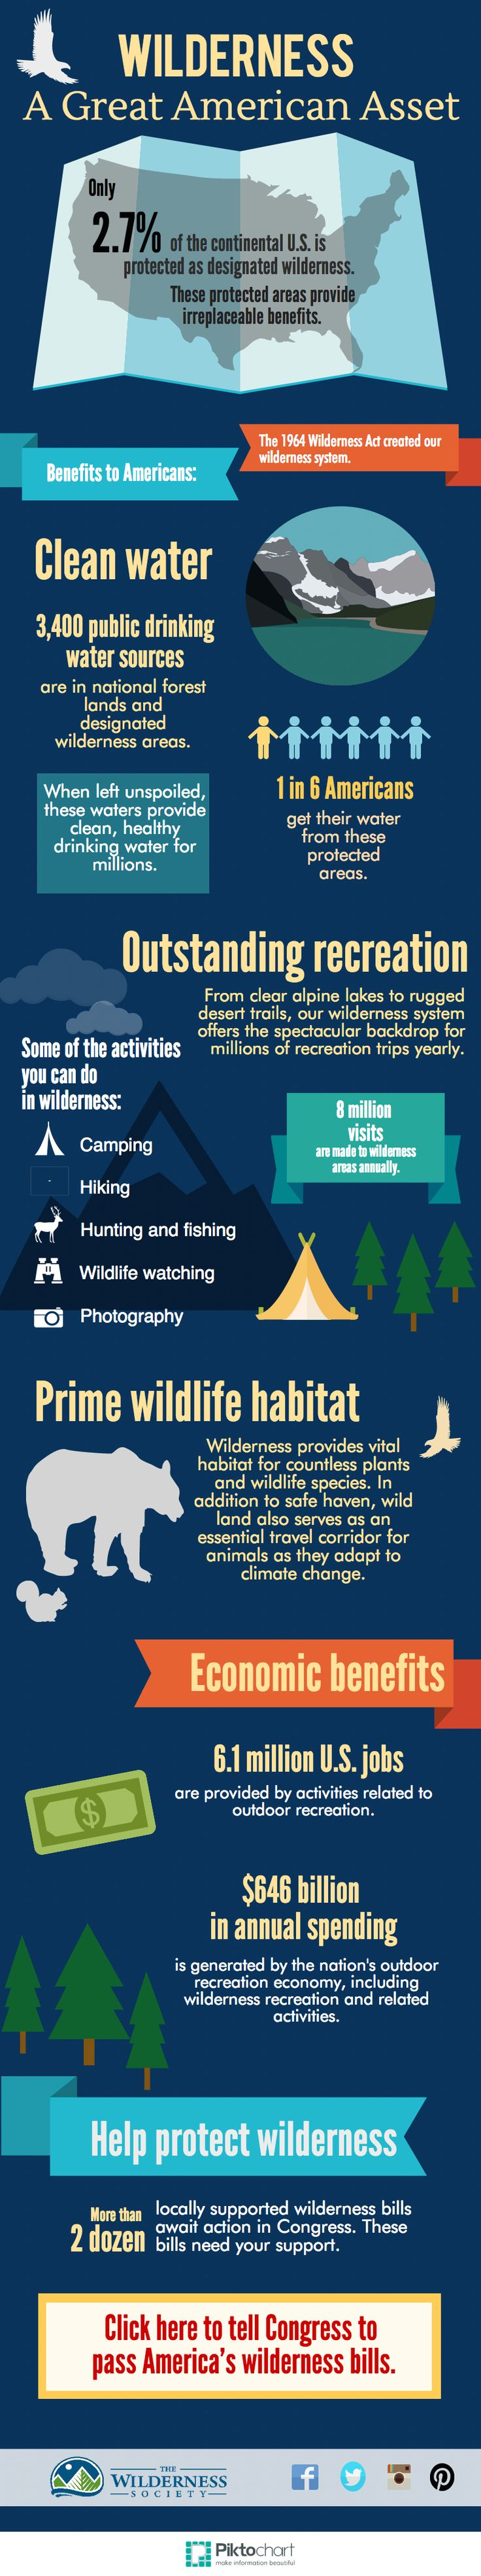 wildernessinforgraphic.jpg